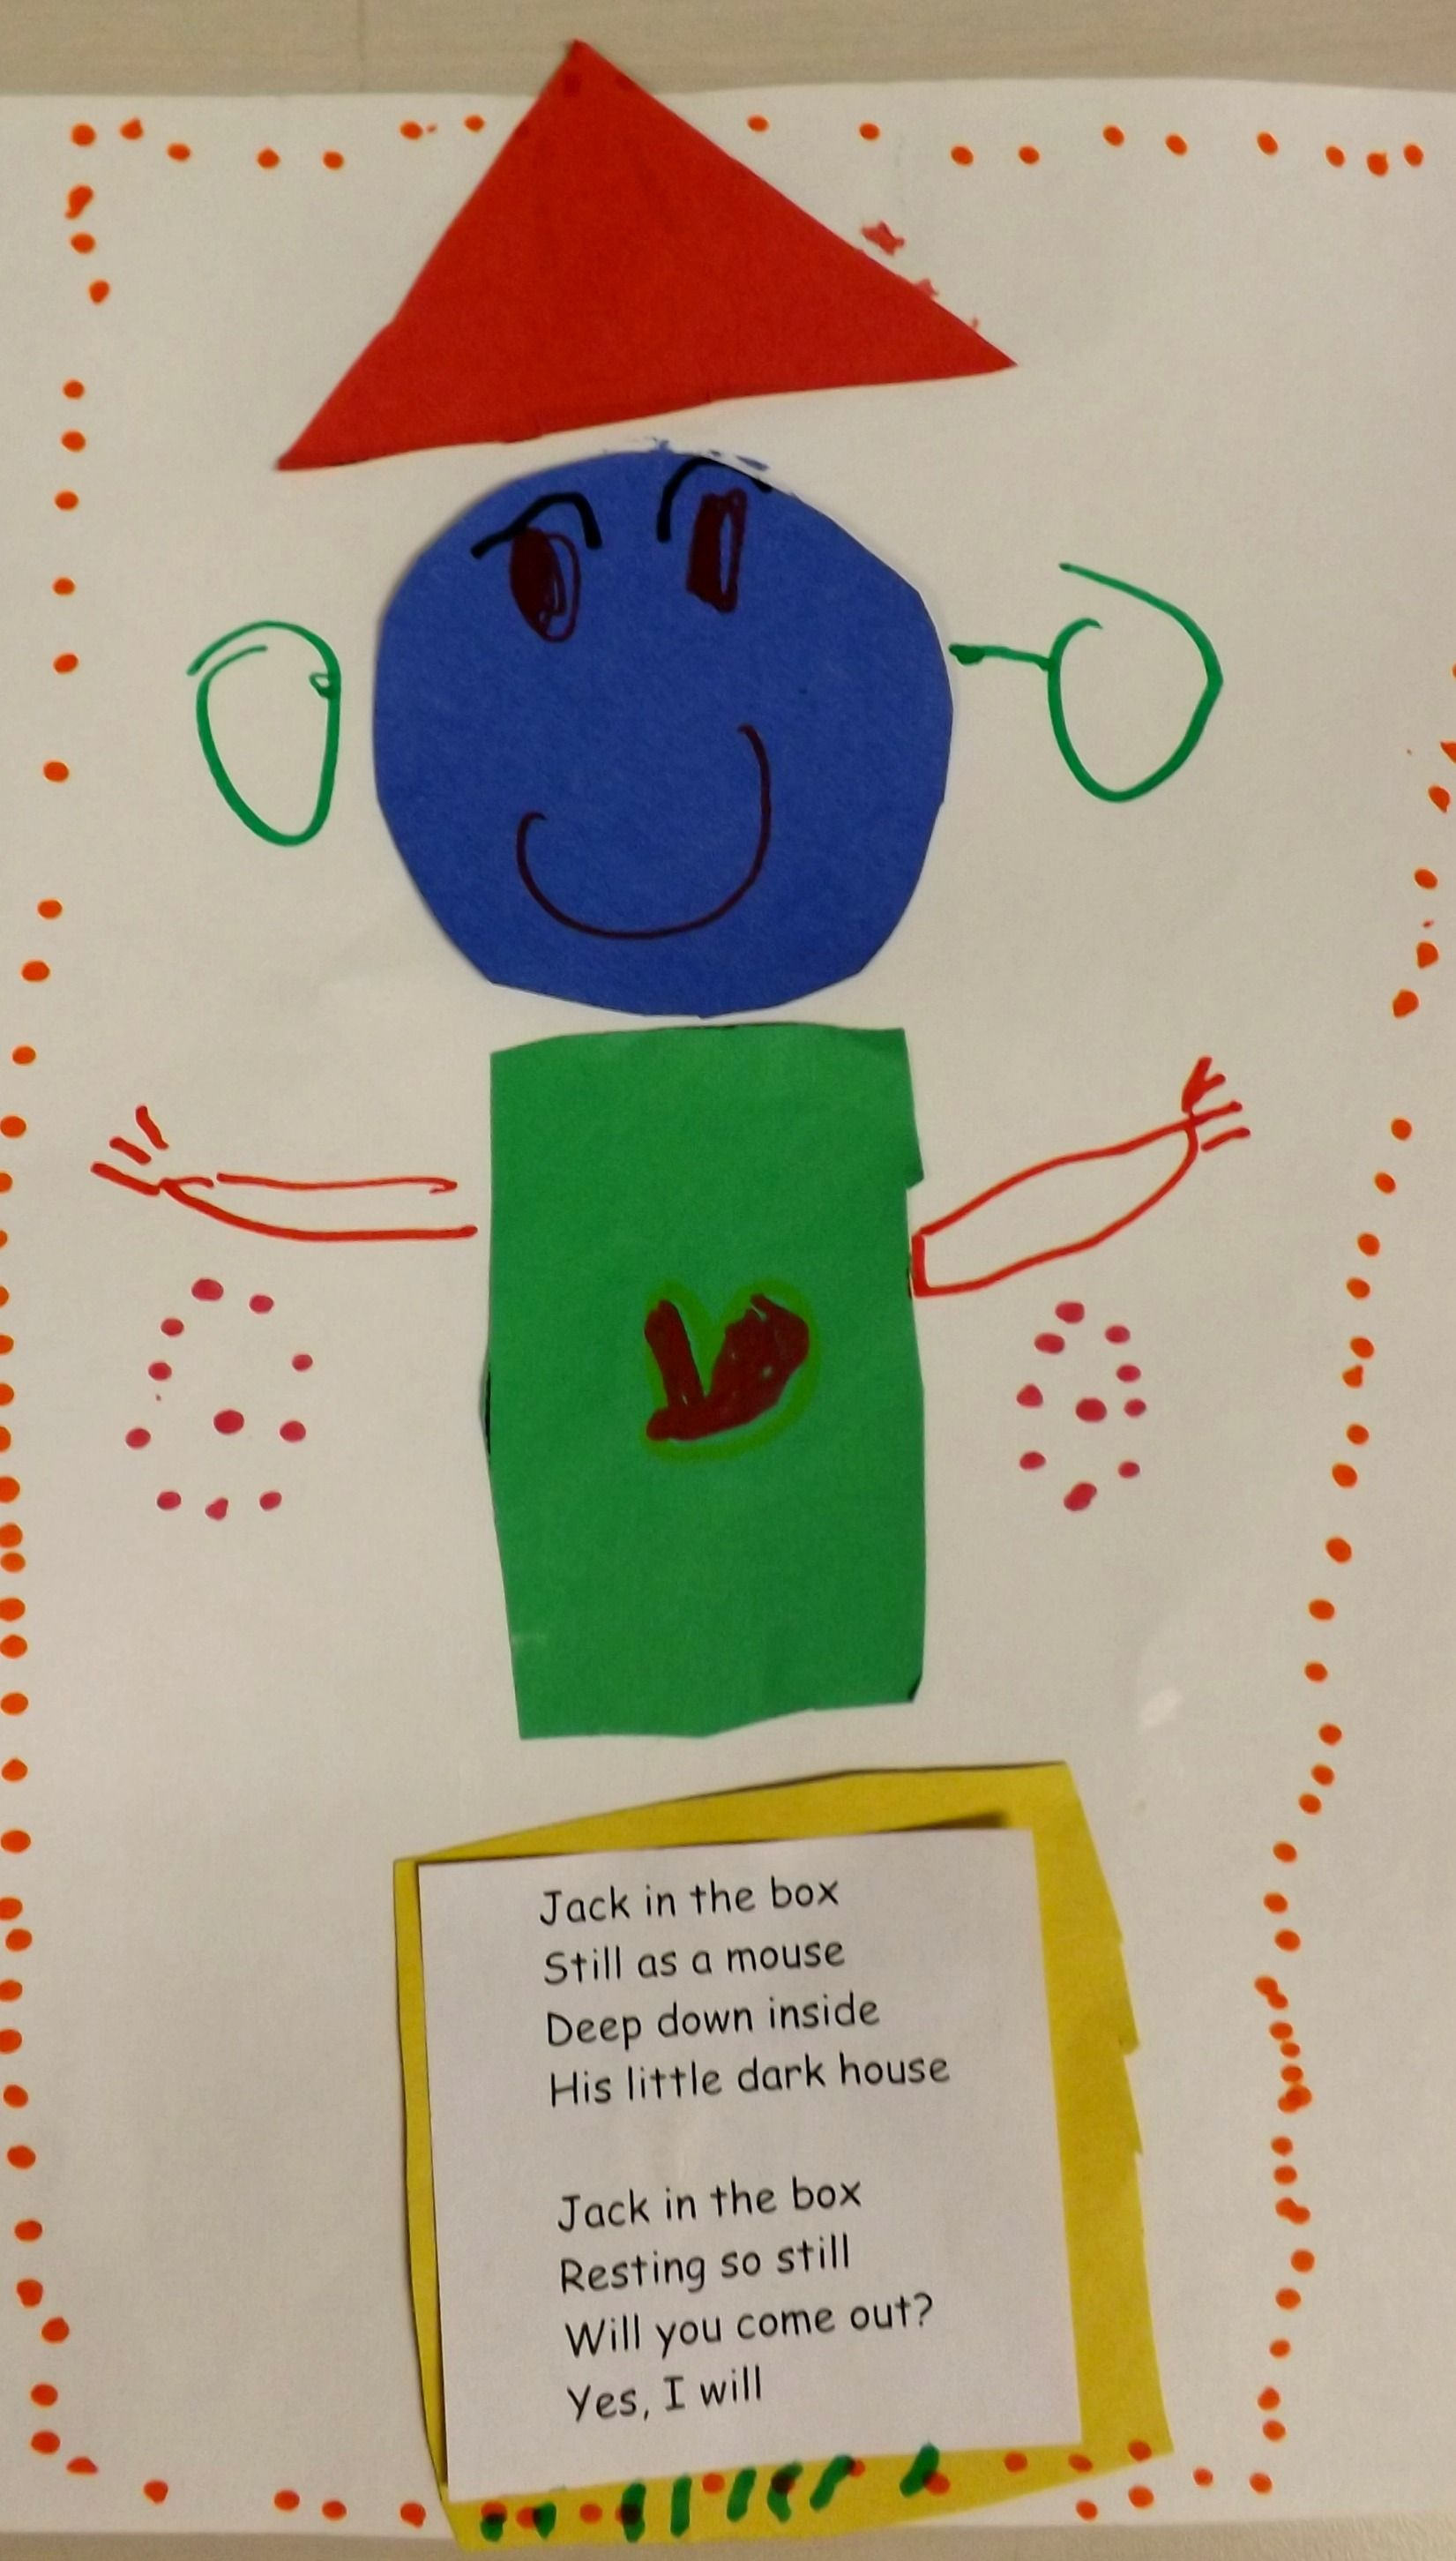 Learning Shapes And Colors Jack In The Box Still As A